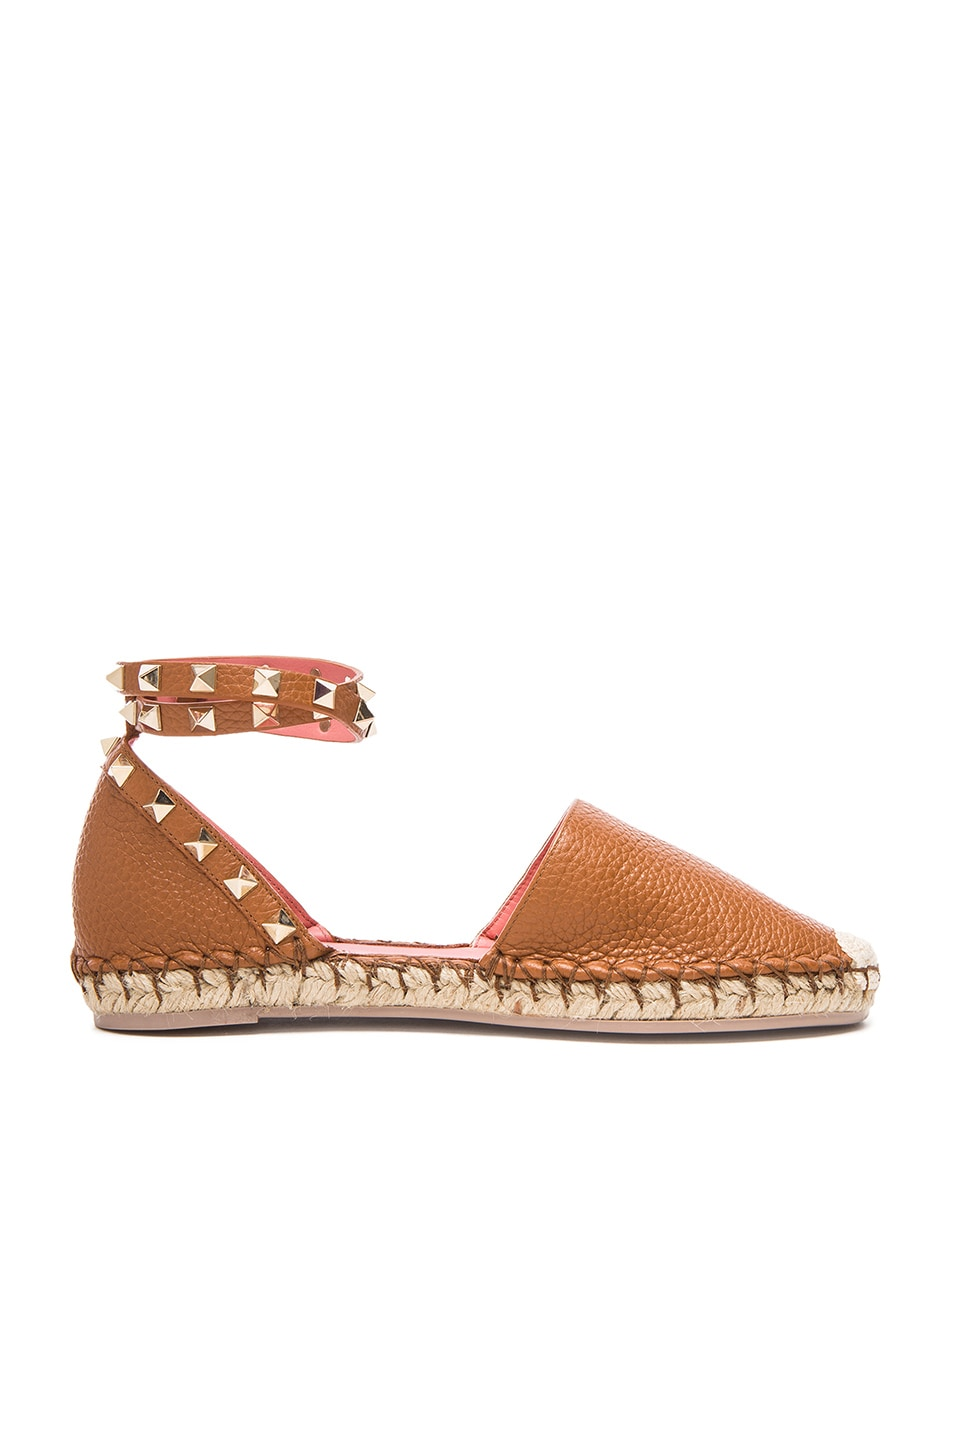 Image 1 of Valentino Rockstud Double Flat Leather Espadrilles in Light Cuir